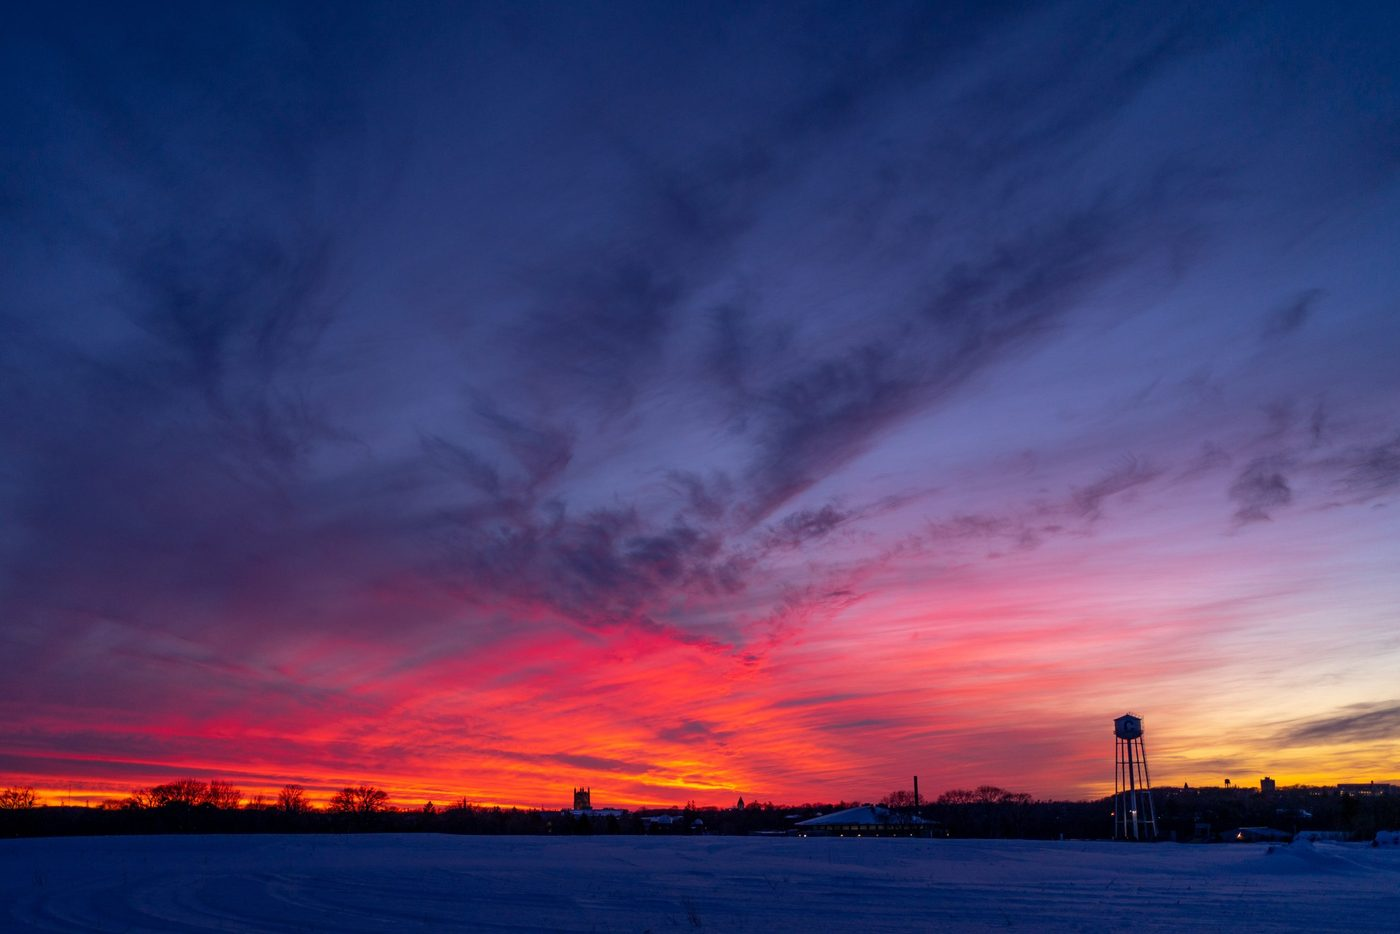 Colorful winter sunset overlooking a field with the Carleton water town and Skinner chapel peaking in the distance